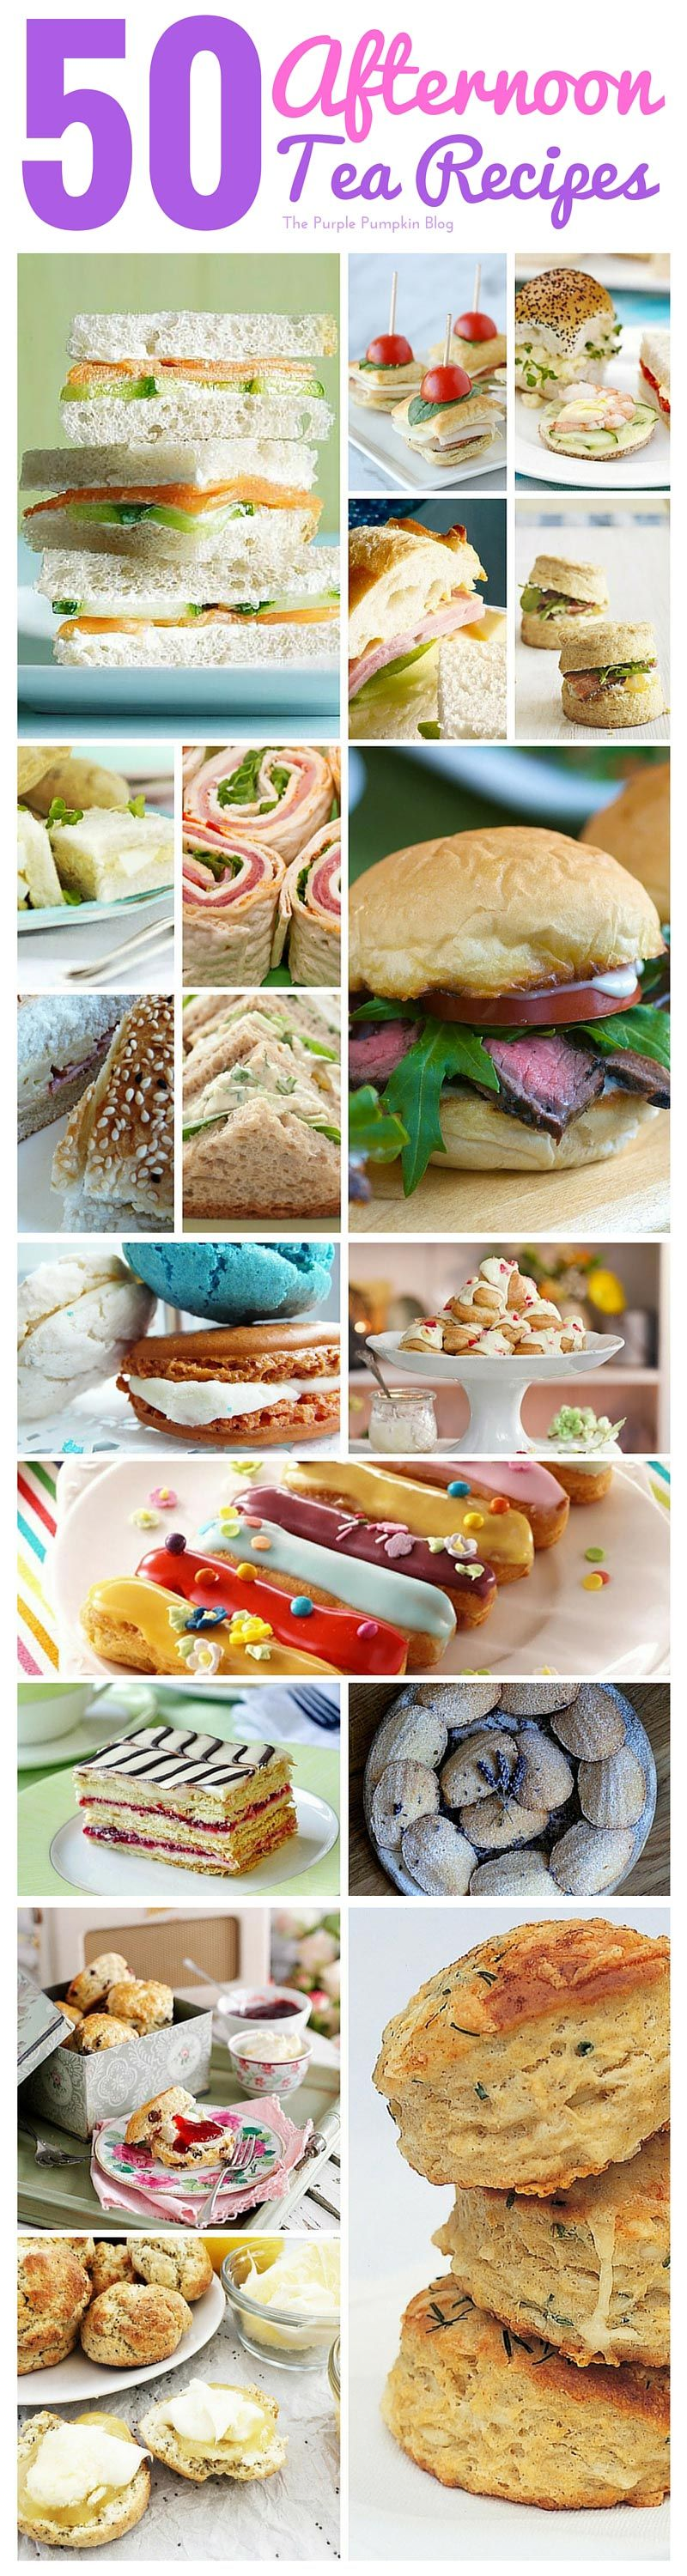 savoury dishes for afternoon tea